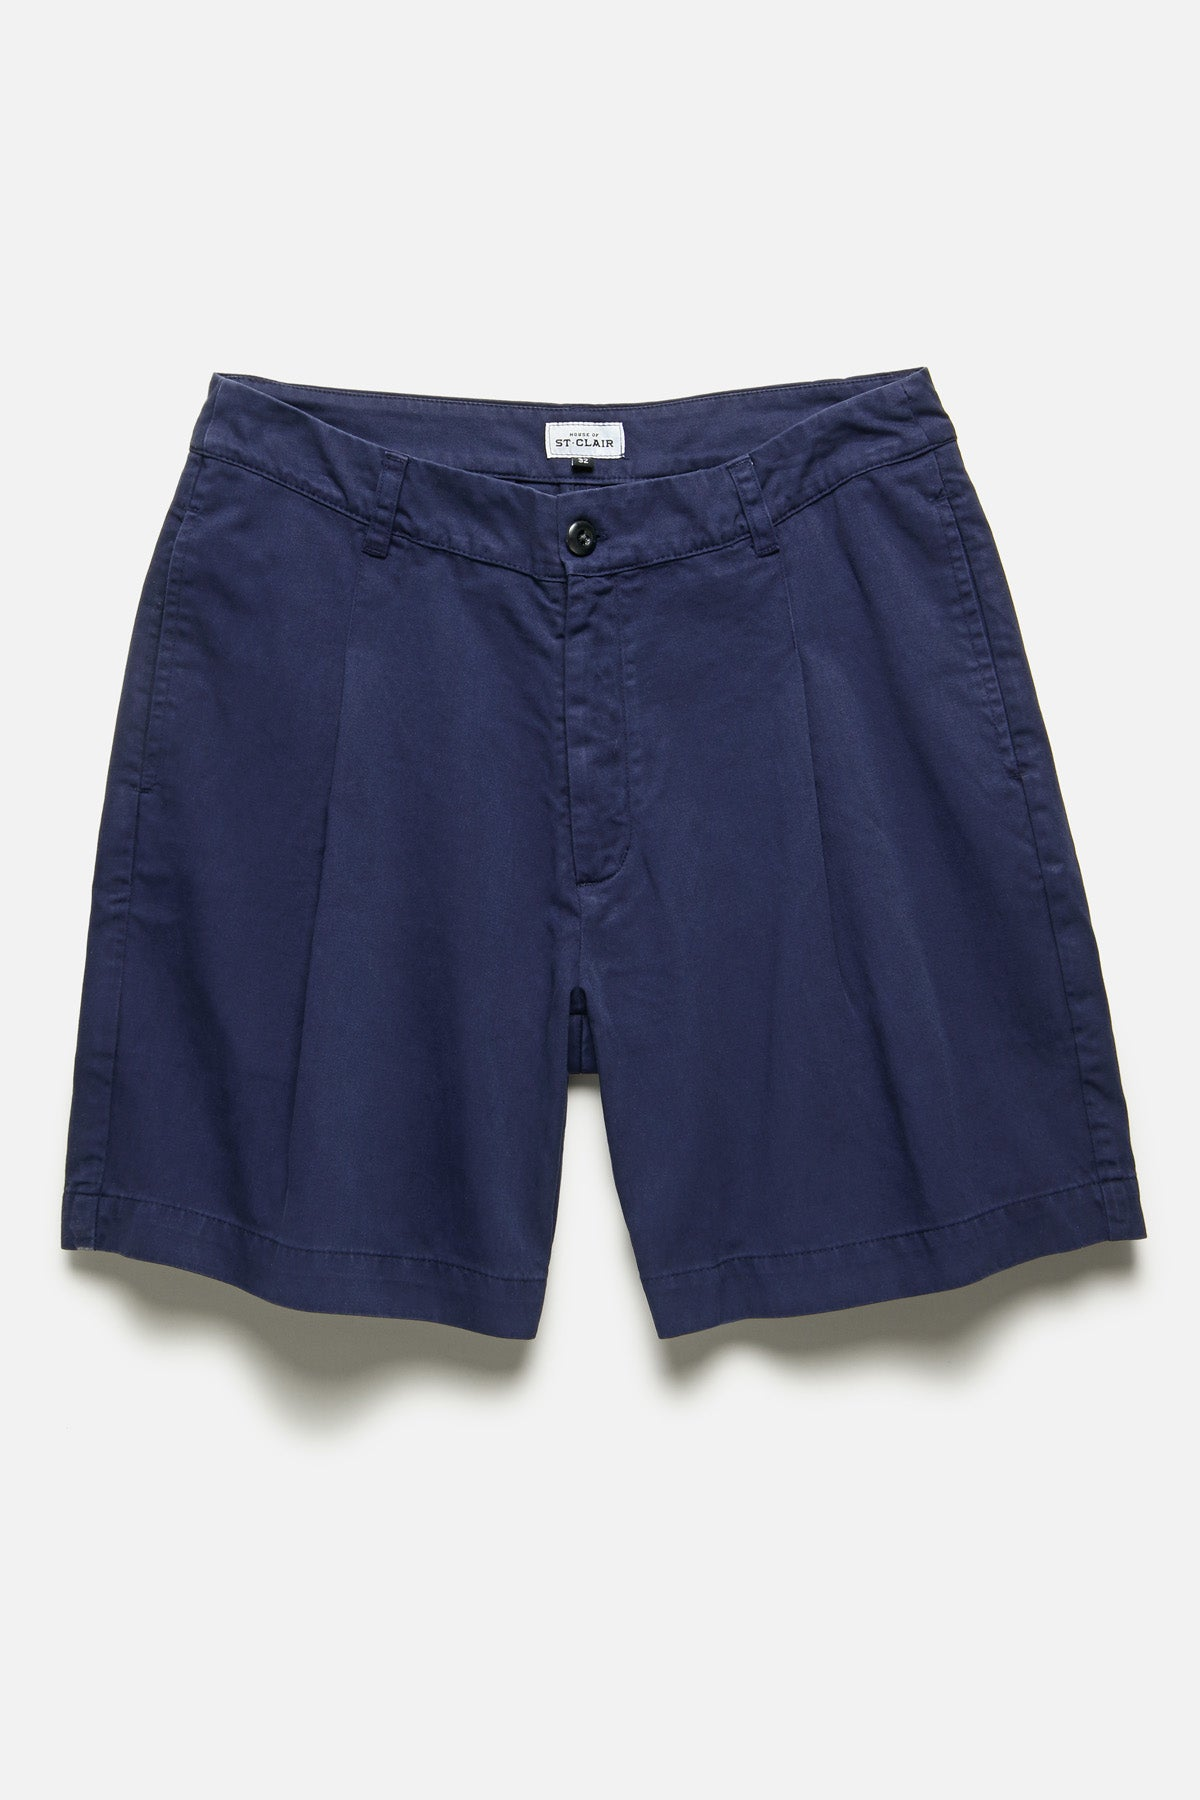 SINGLE PLEAT SHORT IN BLUE - Fortune Goods